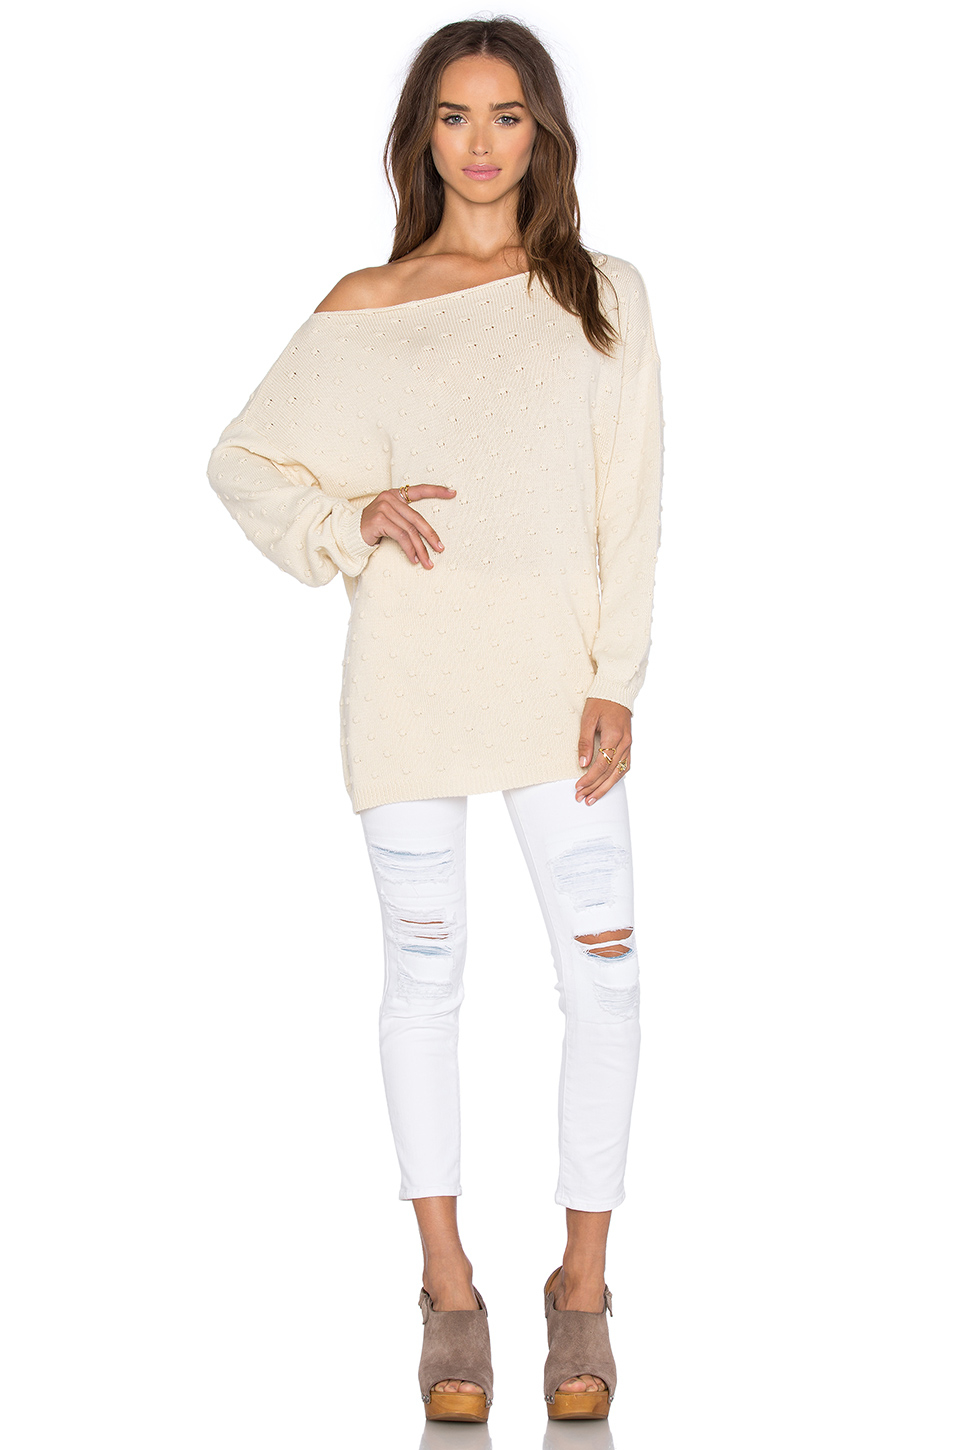 Knit Off Shoulder Sweater Cotton - Cashmere Sweater England